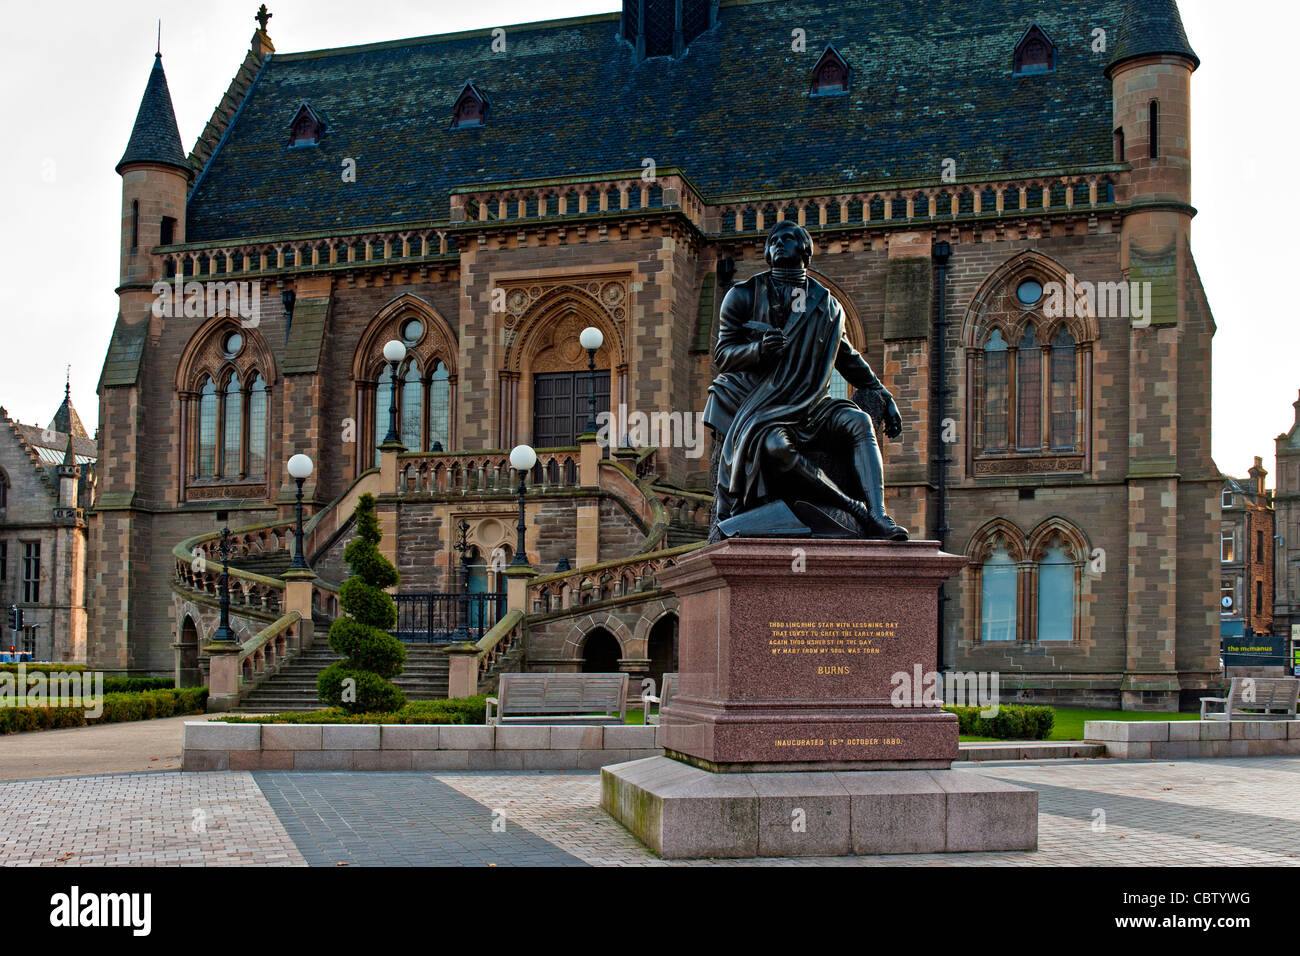 Robert Burns Statue outside the McManus Gallery in Dundee, Scotland - Stock Image